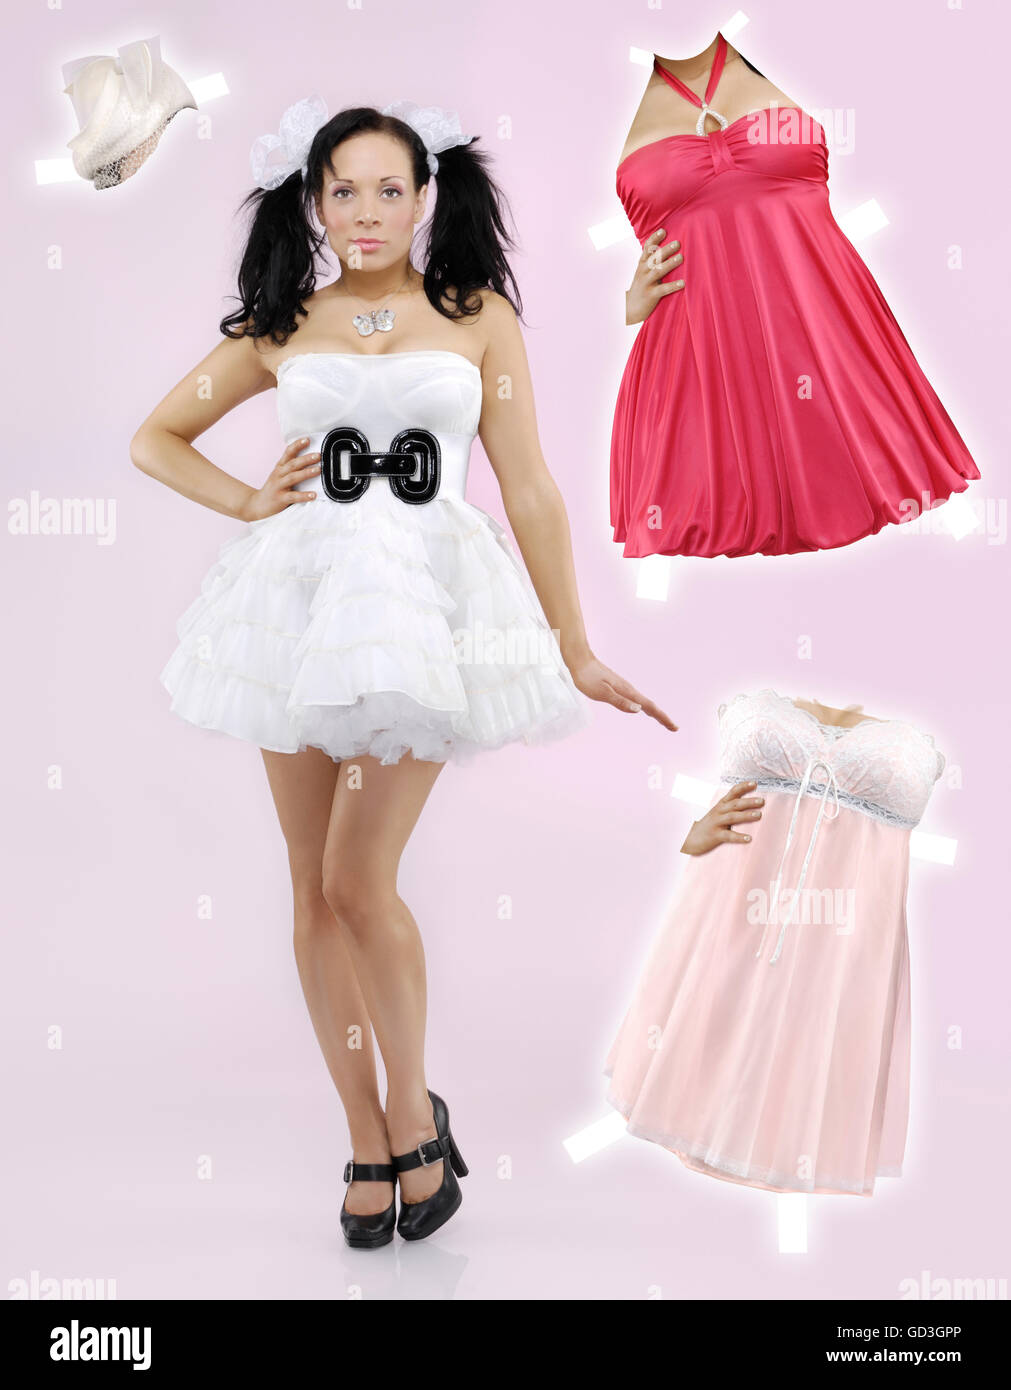 Paper doll woman and fancy clothes - Stock Image